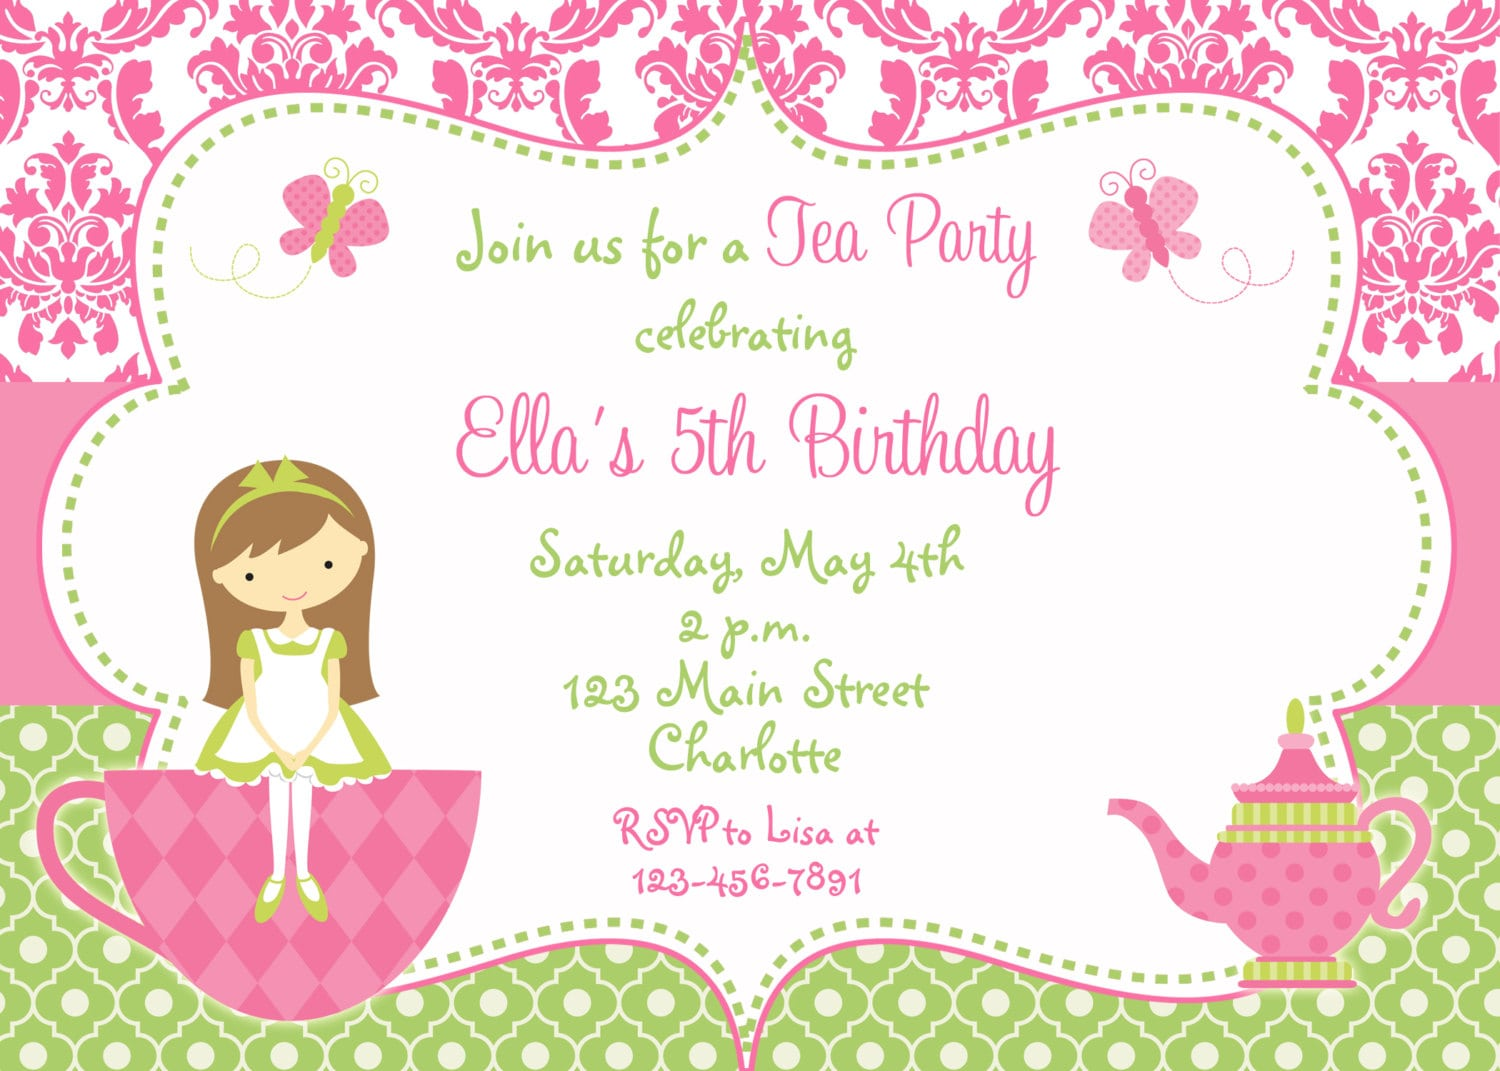 Blank Invitation For A Princess Tea Party